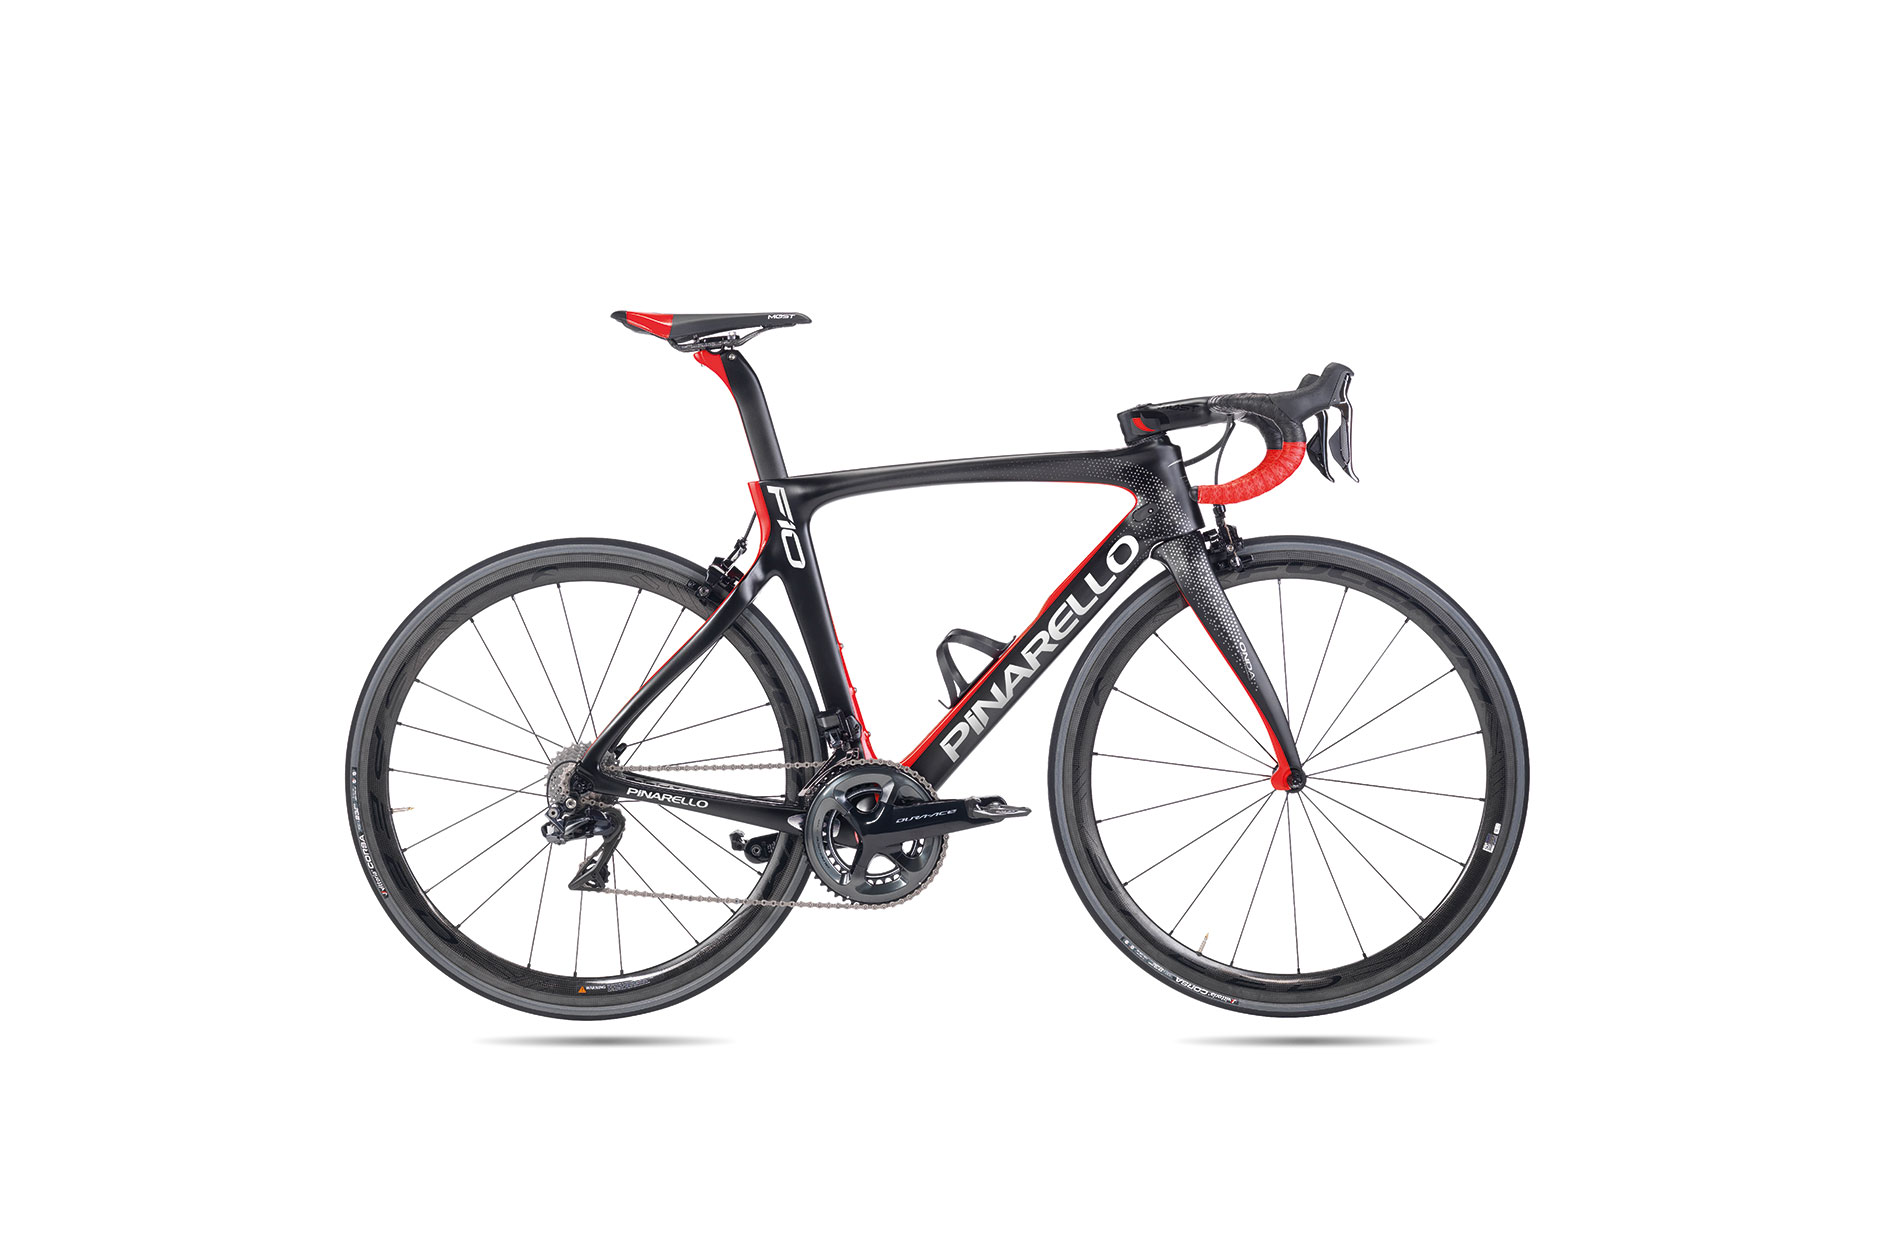 PINARELLO-F10-167-Black-Lava